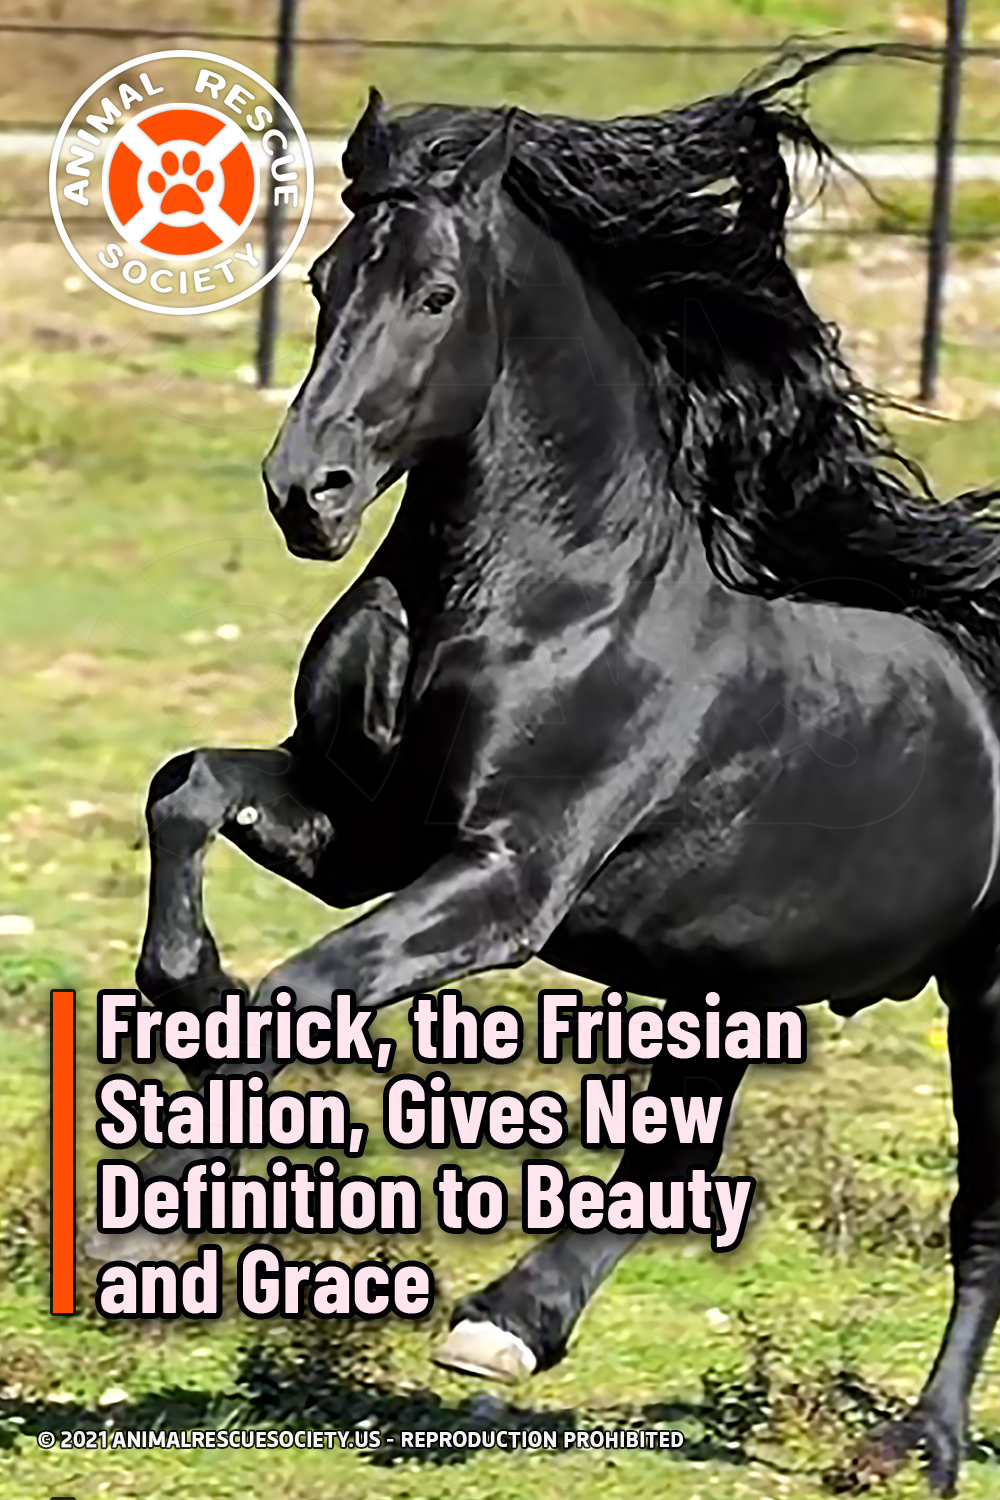 Fredrick, the Friesian Stallion, Gives New Definition to Beauty and Grace